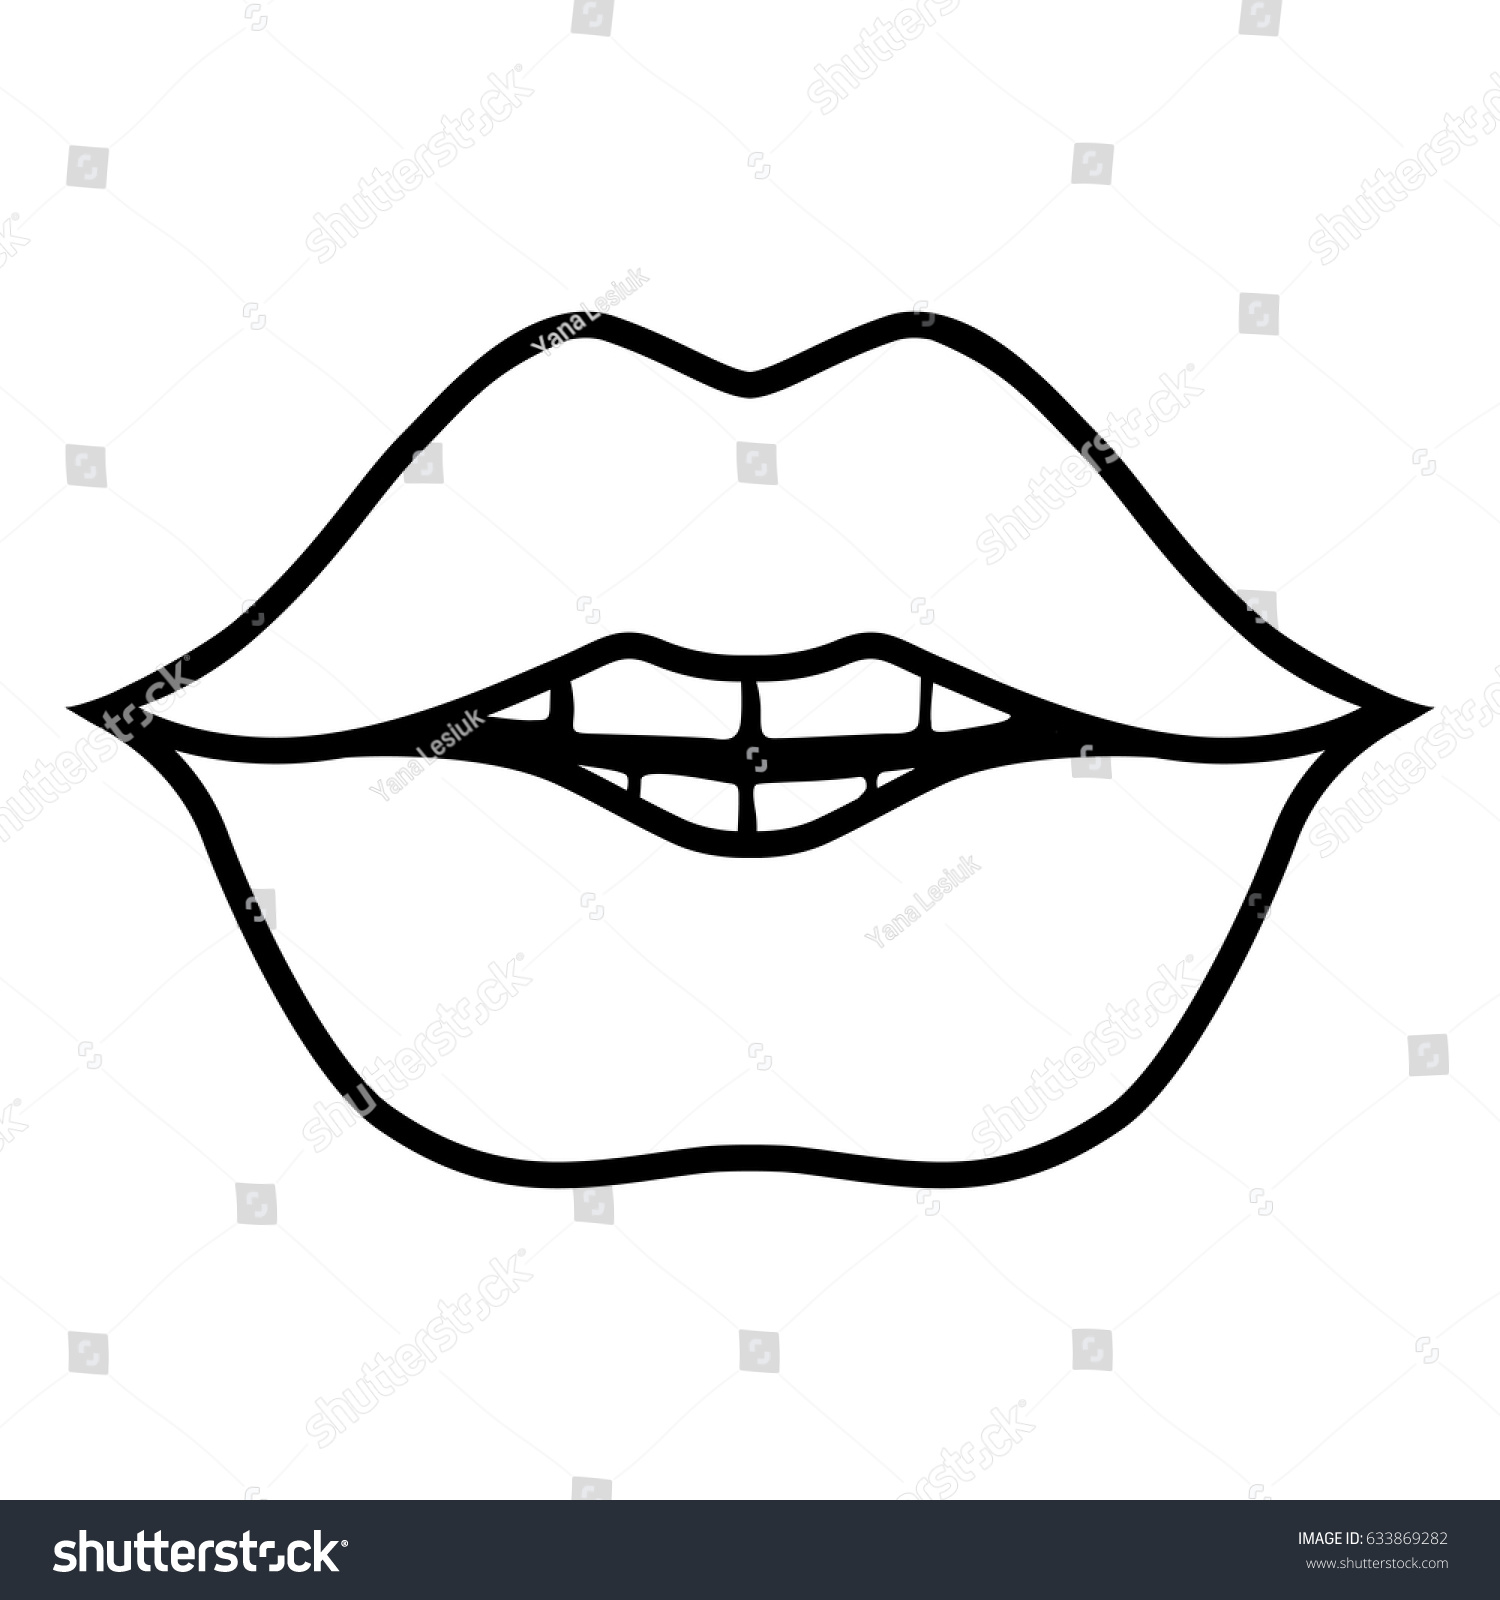 It's just an image of Effortless Lips Outline Drawing